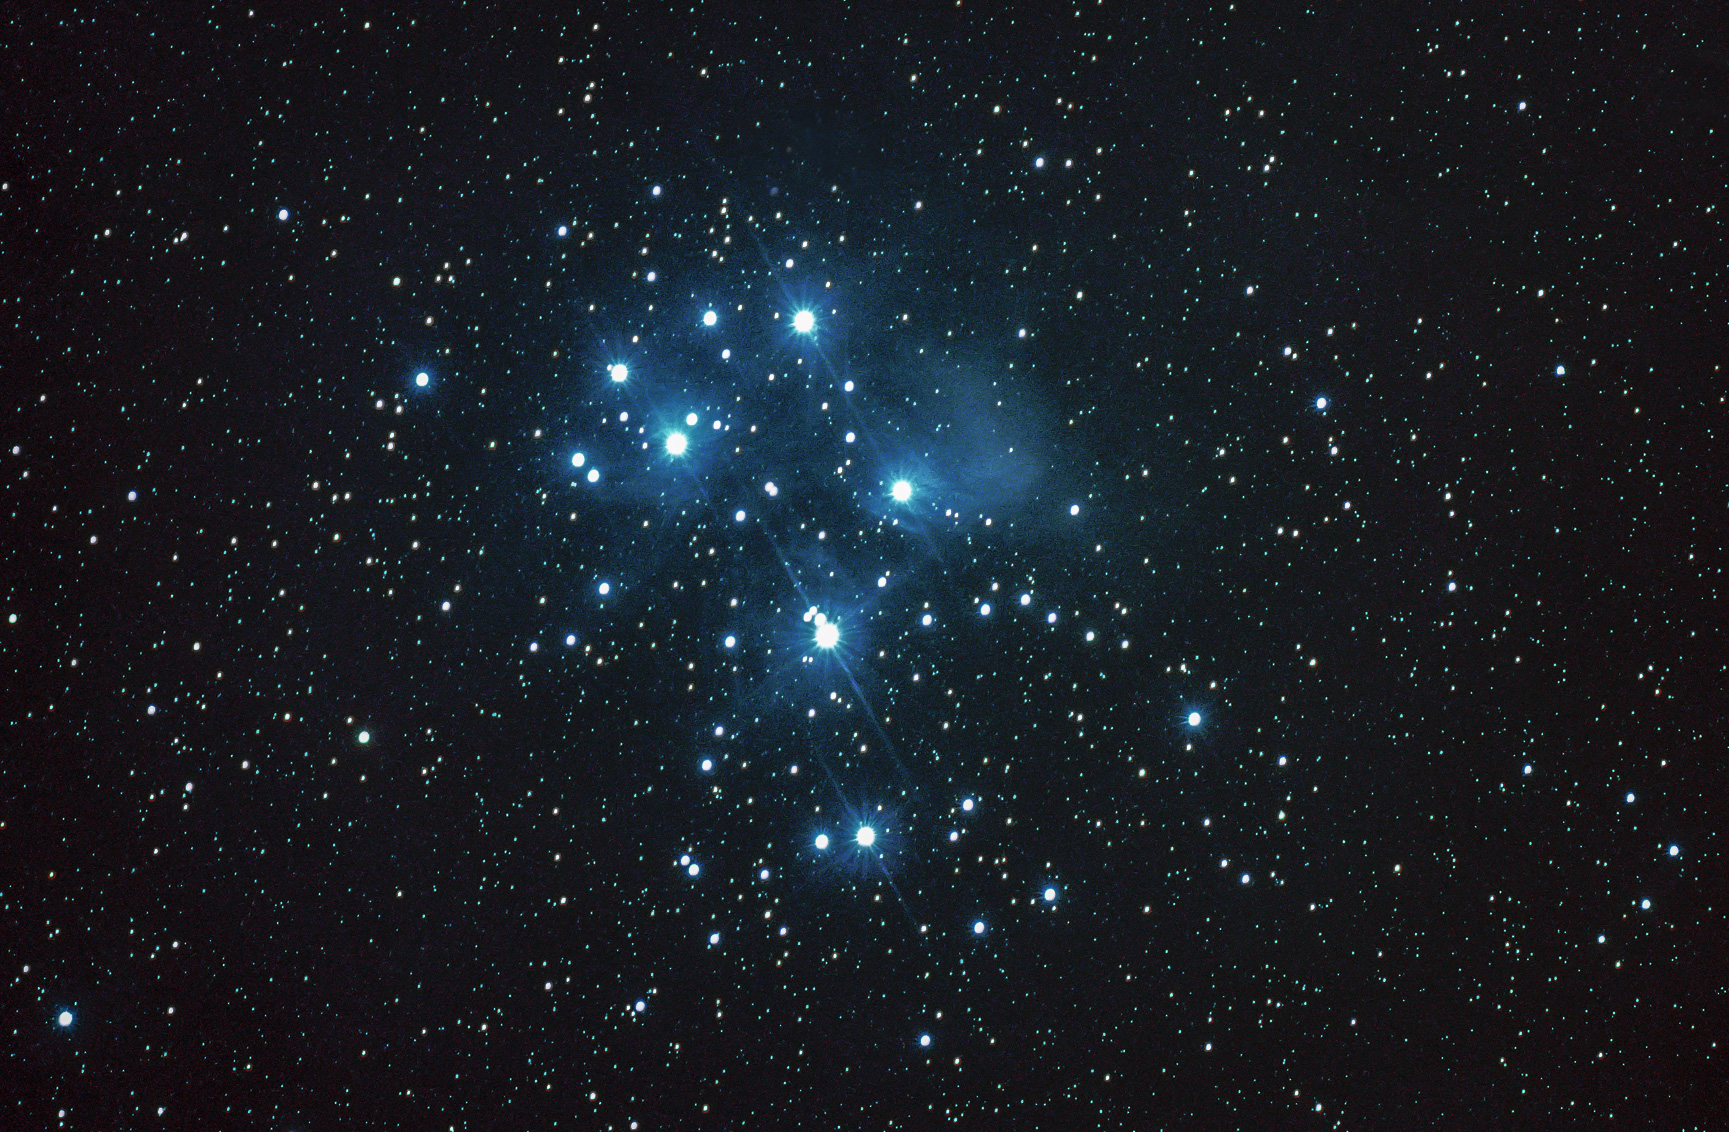 M45 Pleiades Astrophotography